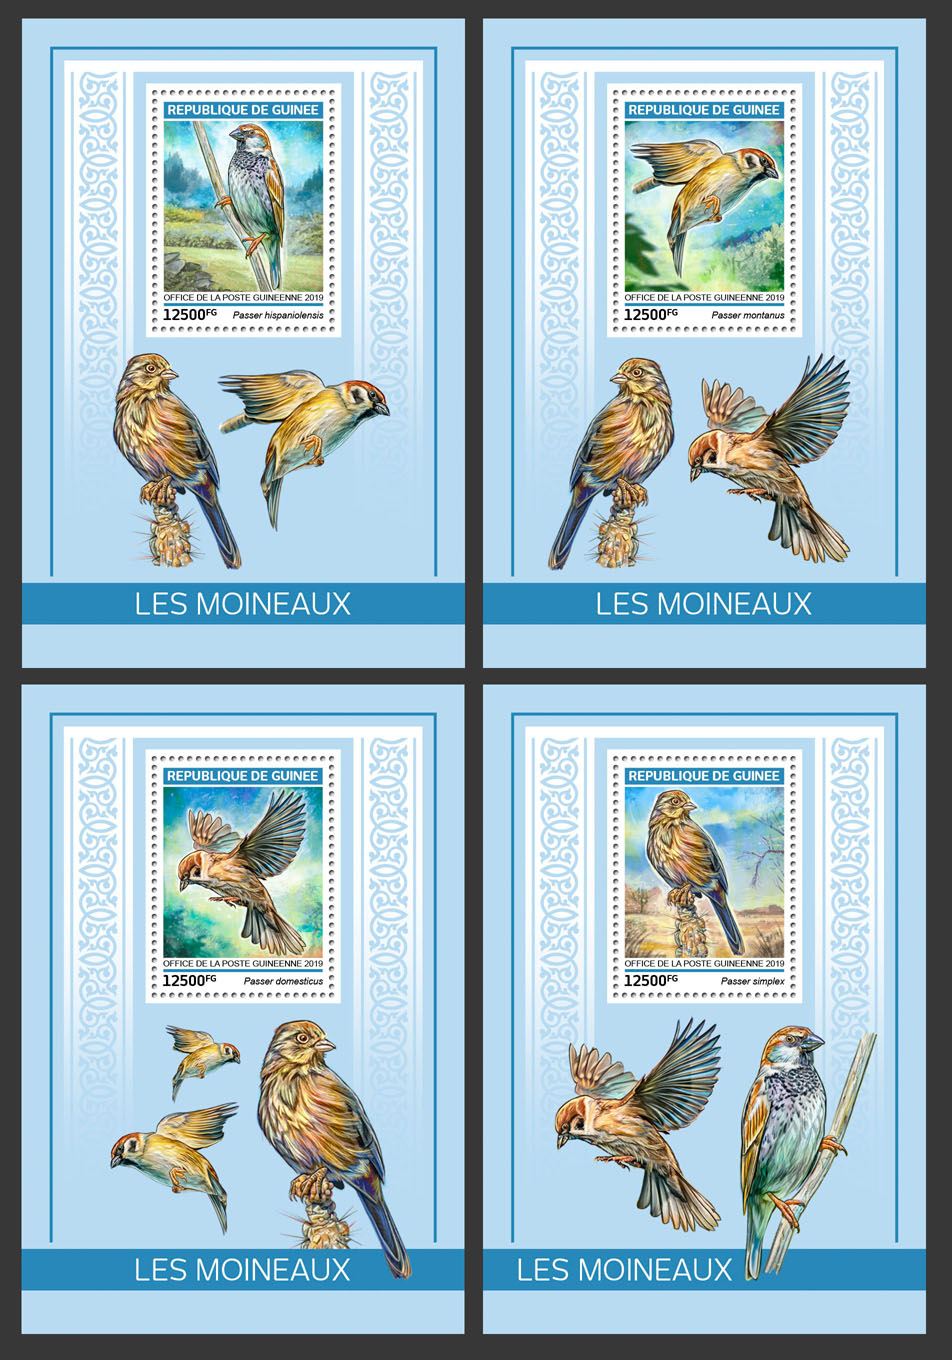 Sparrows - Issue of Guinée postage stamps